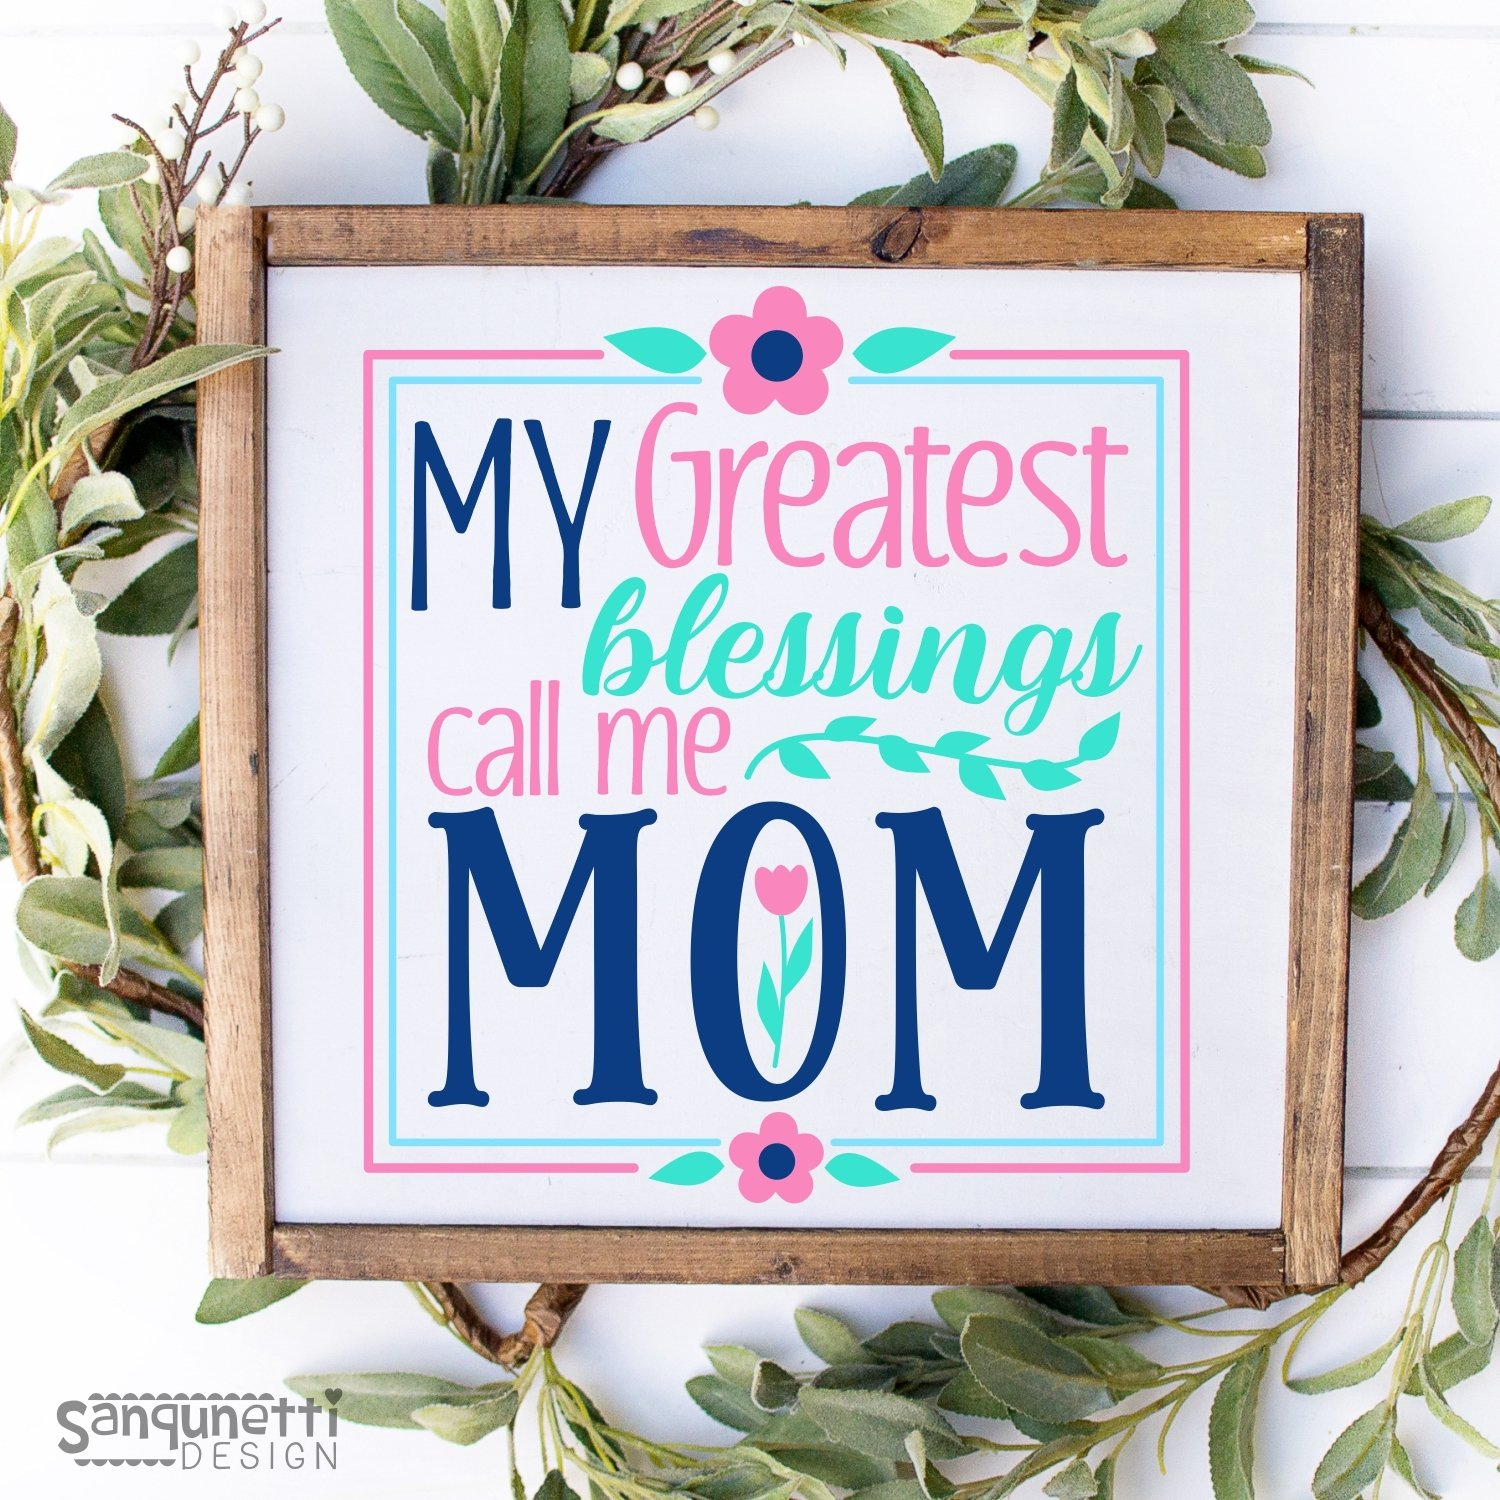 My greatest blessing call me mom SVG, mother cutting file example image 2